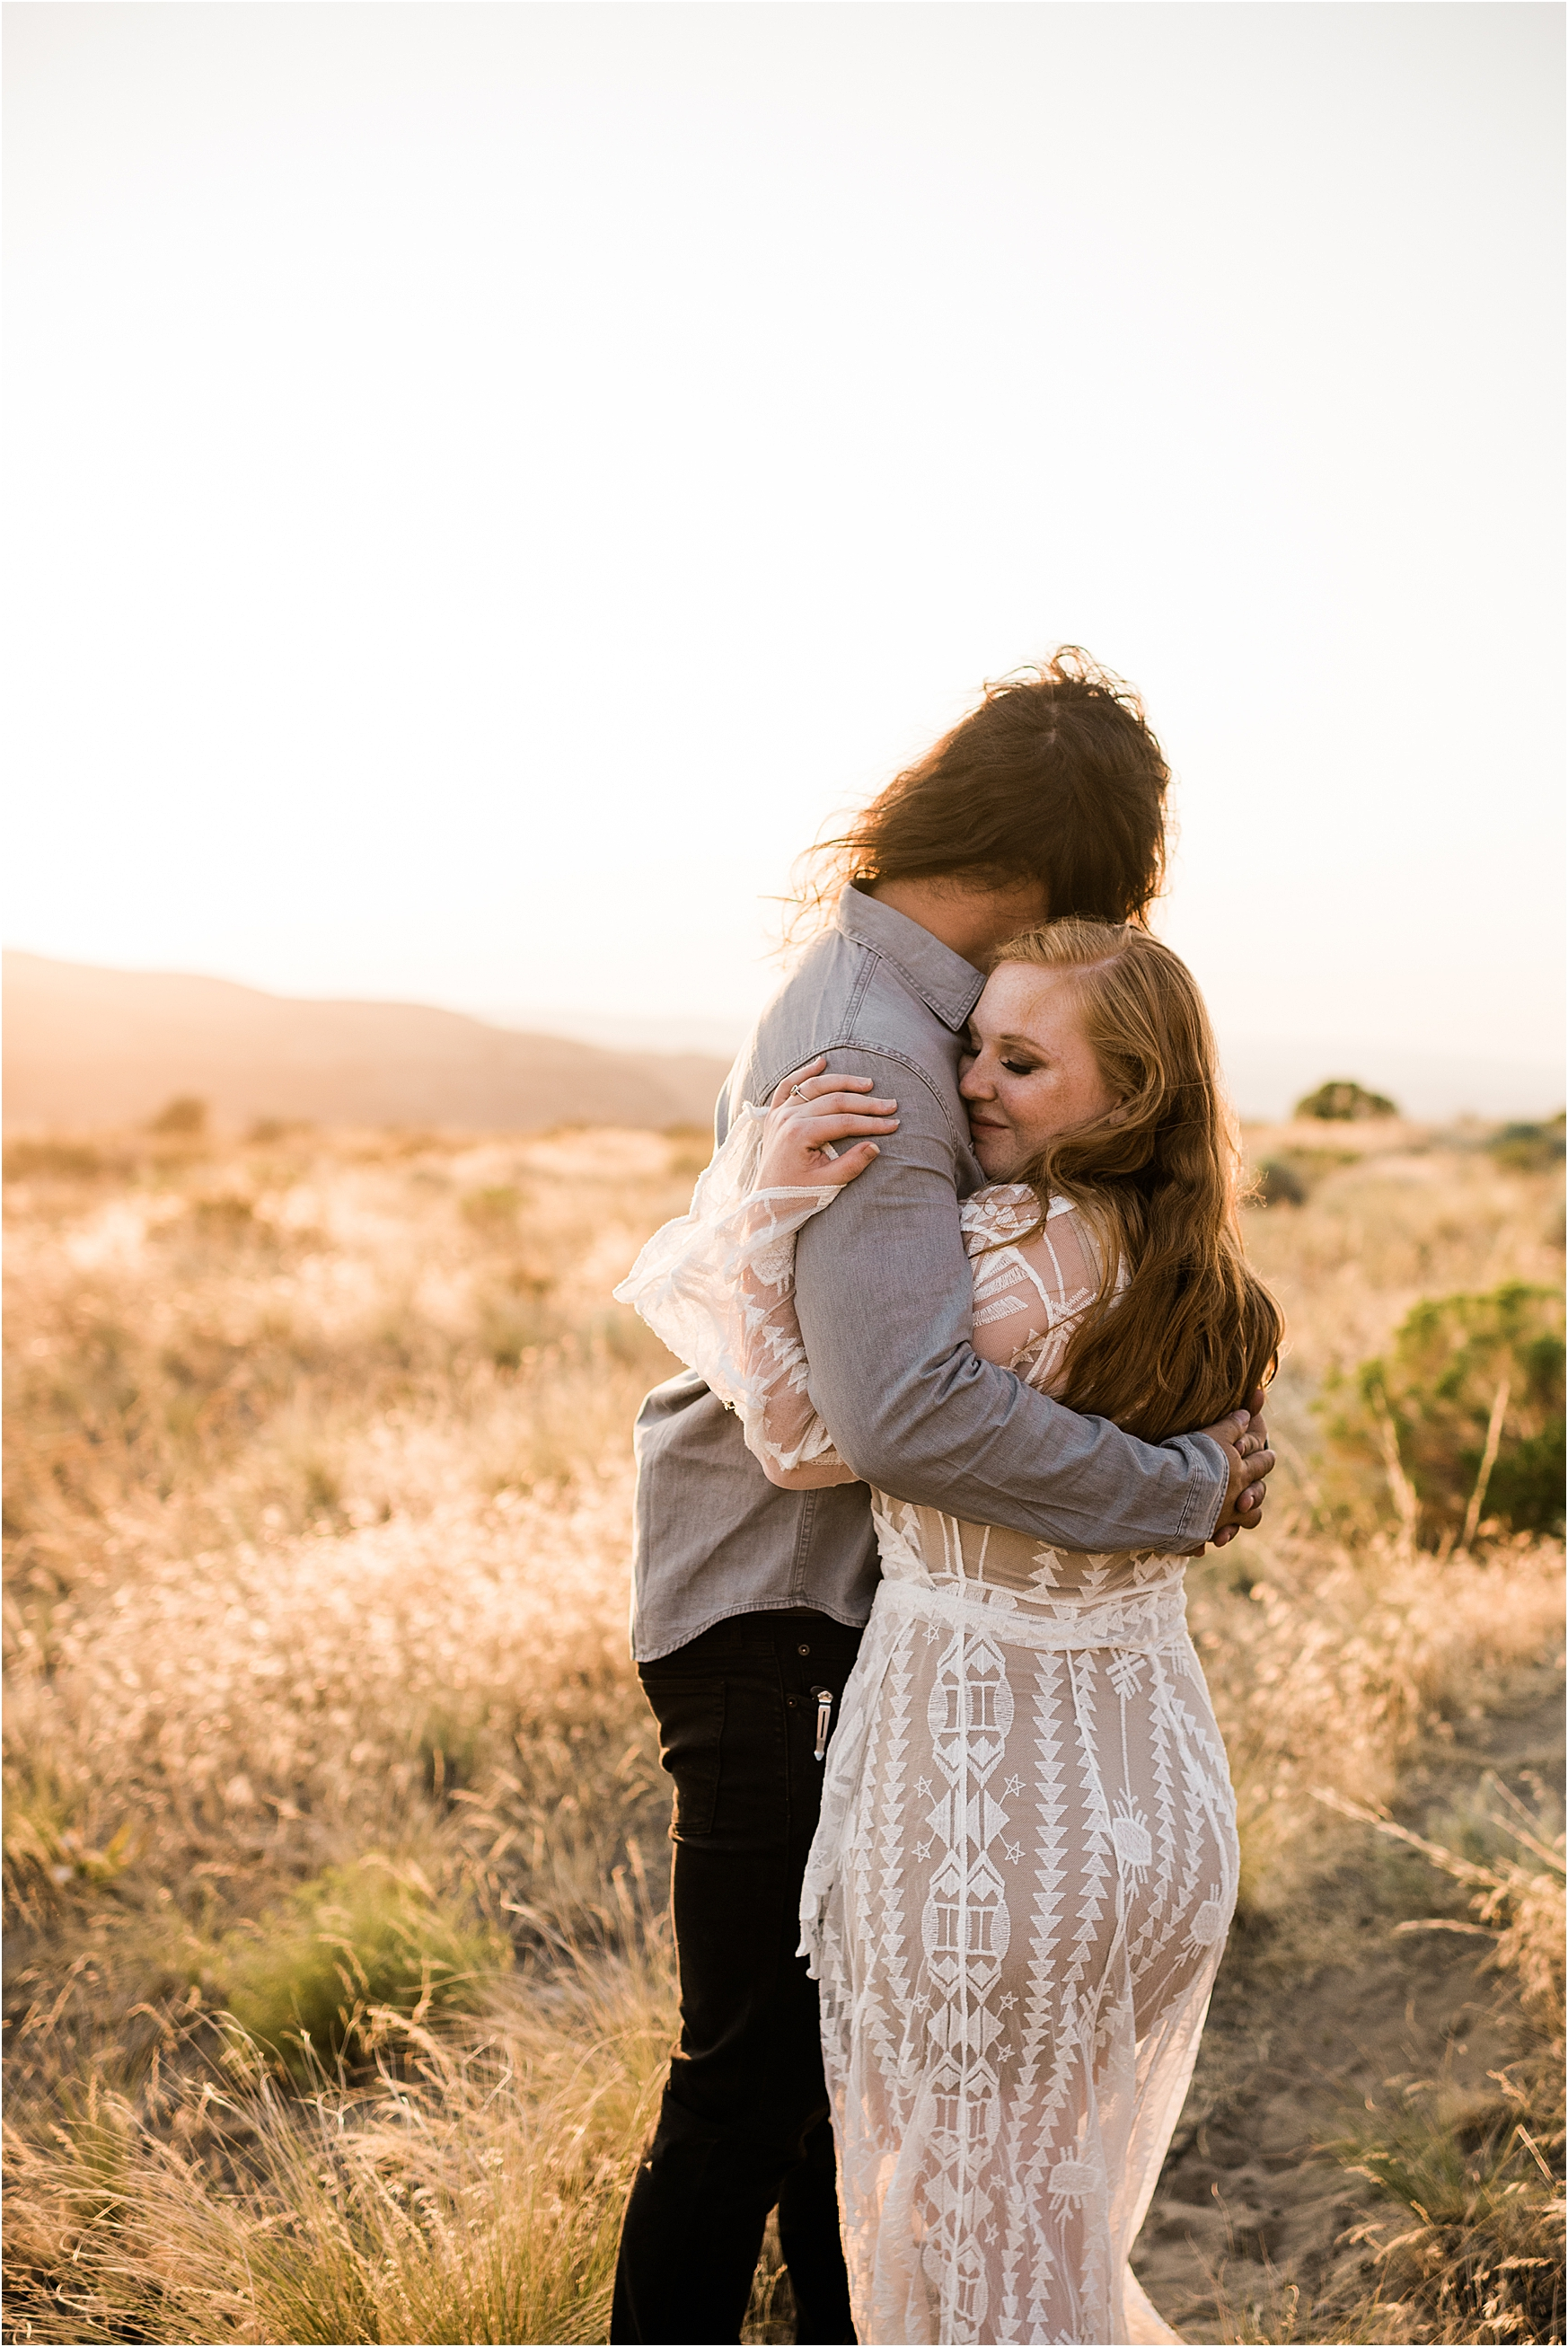 Caitlin & Tarnell walking along the central washington scrublands in wedding attire. Wild Horse Monument Elopement Inspiration by Forthright Photo.